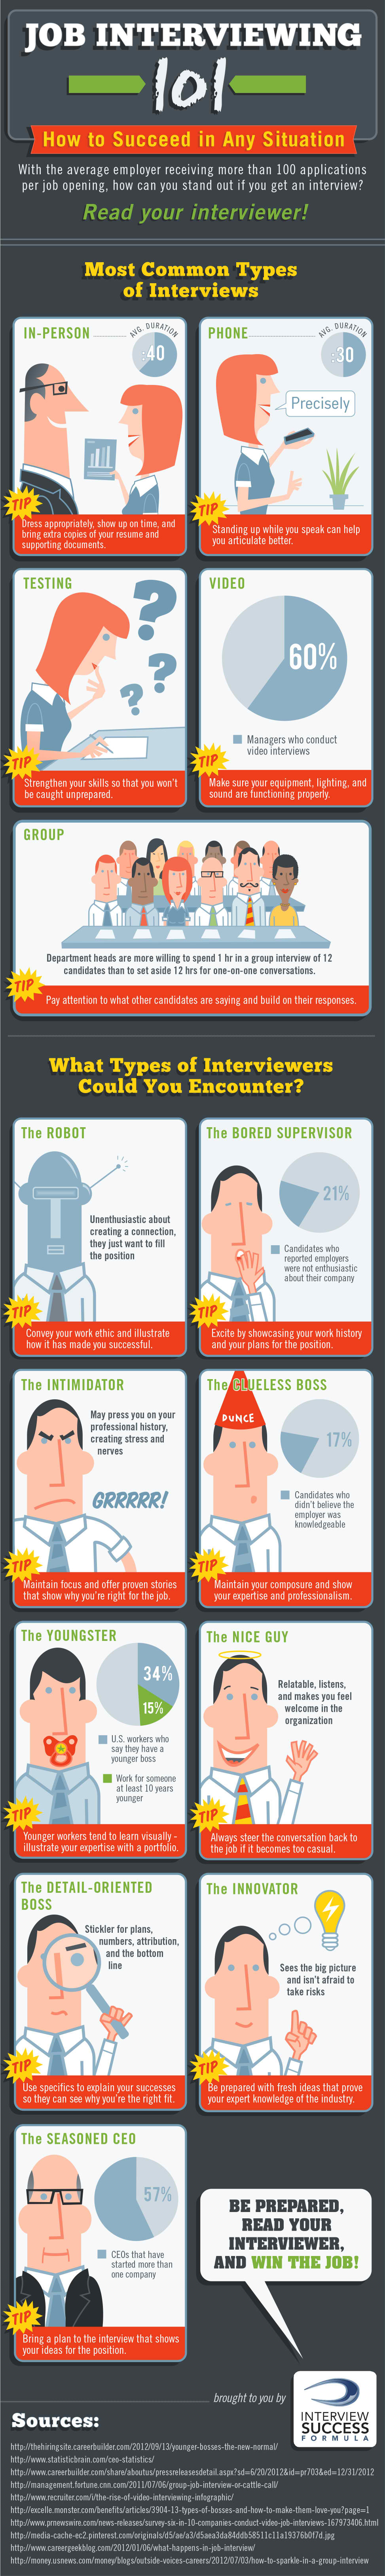 Job Interviewing 101 (Infographic)